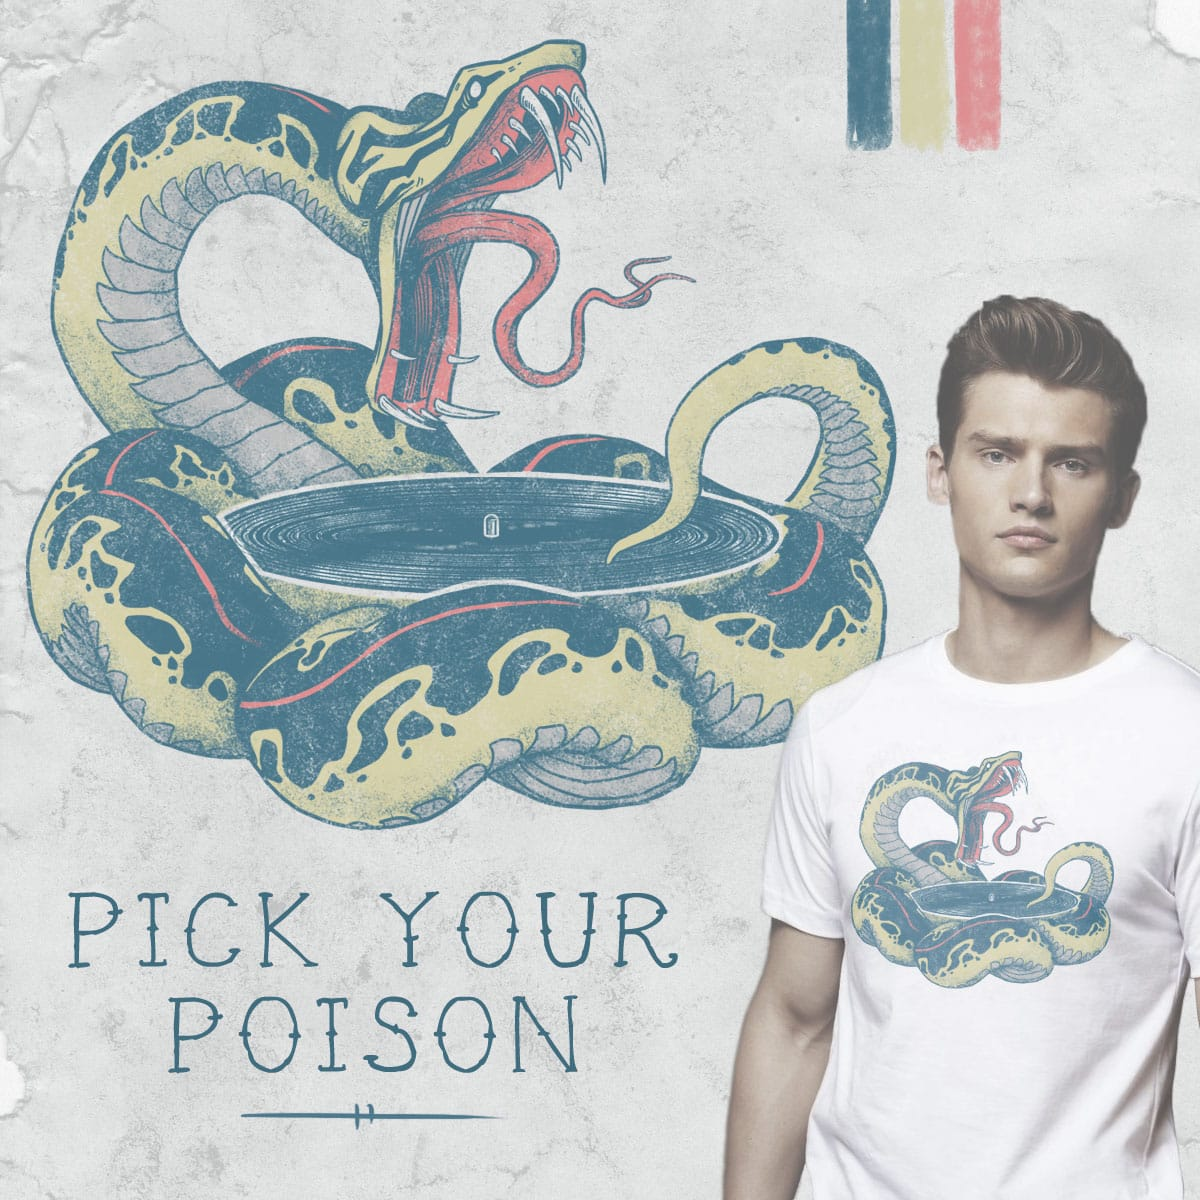 Pick Your Poison by Ellsswhere on Threadless